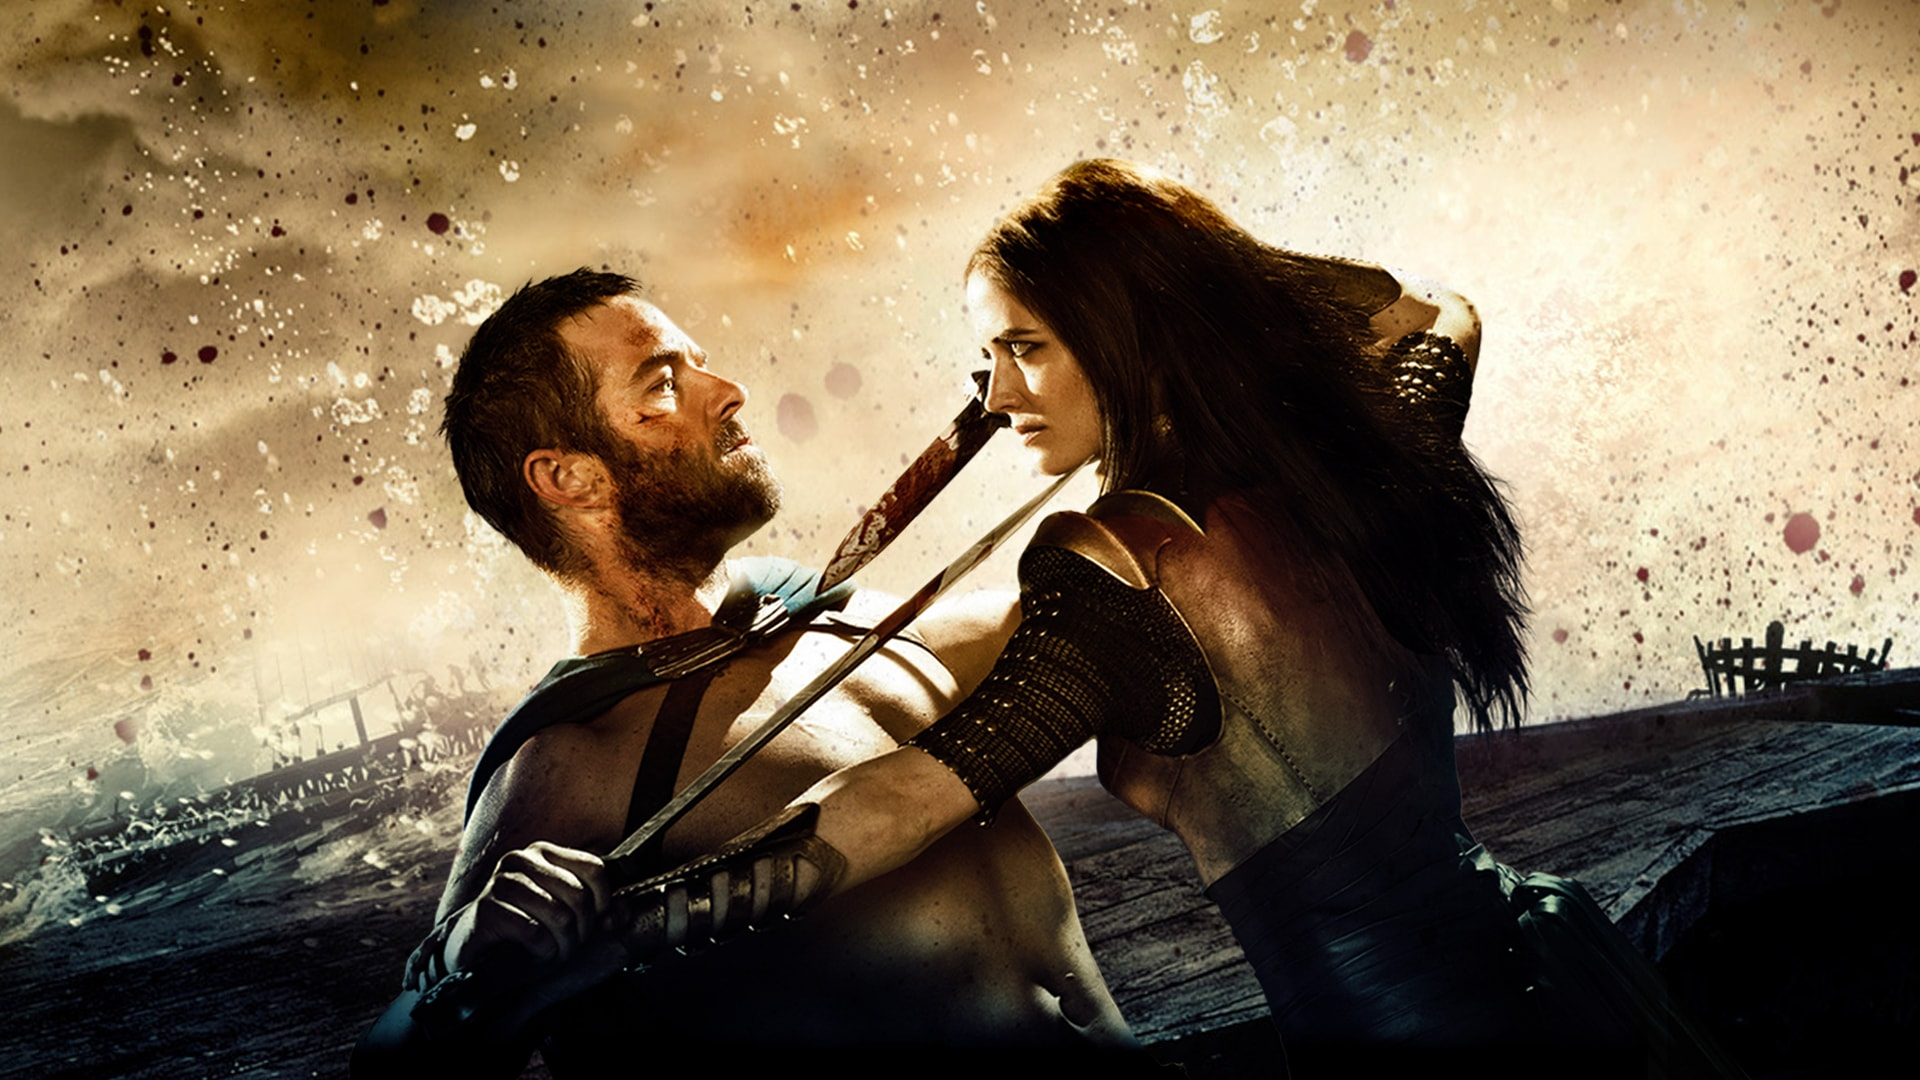 1920x1080 - 300: Rise of an Empire Wallpapers 14